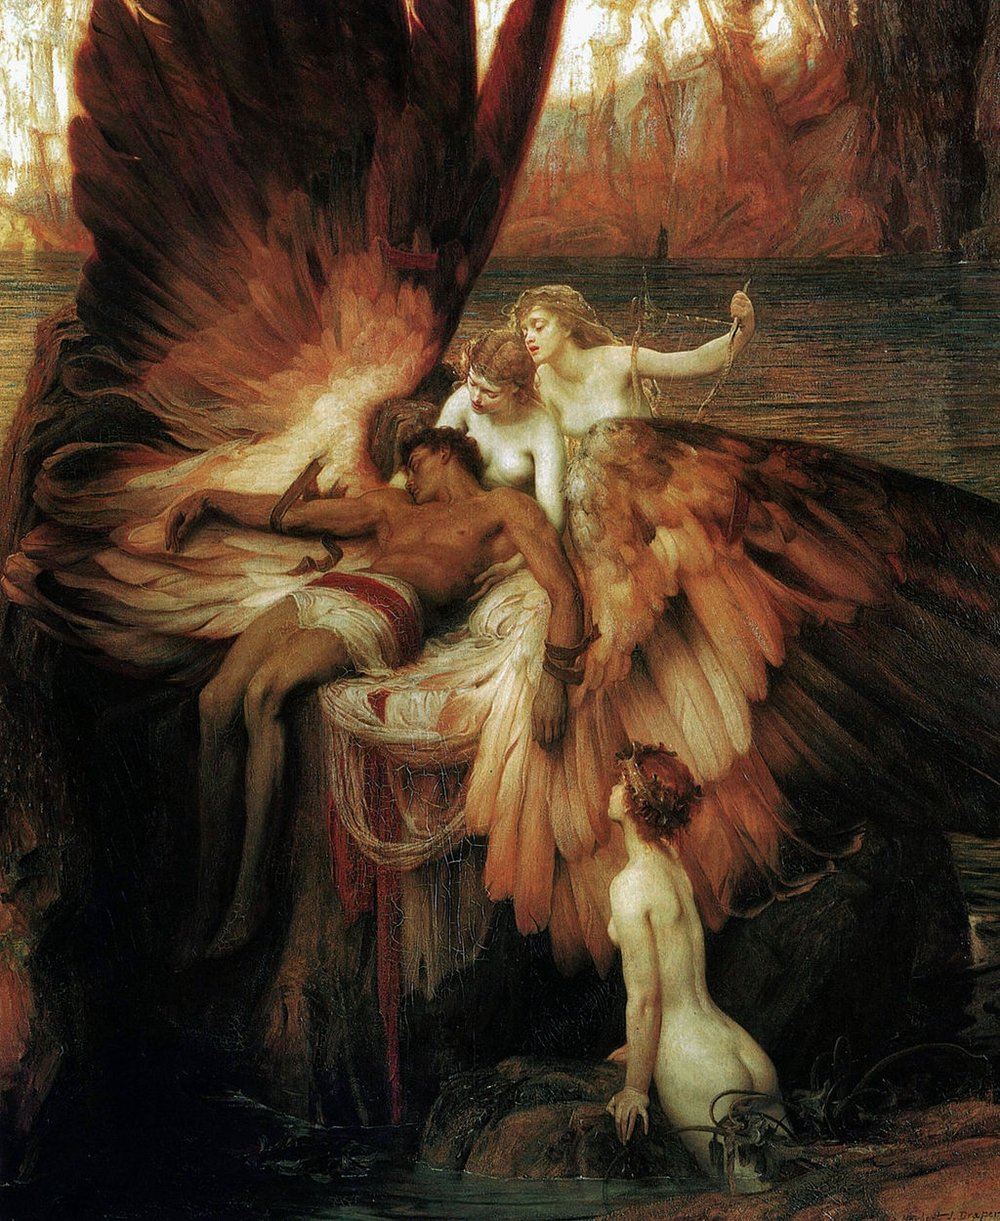 The Lament for Icarus by H. J. Draper